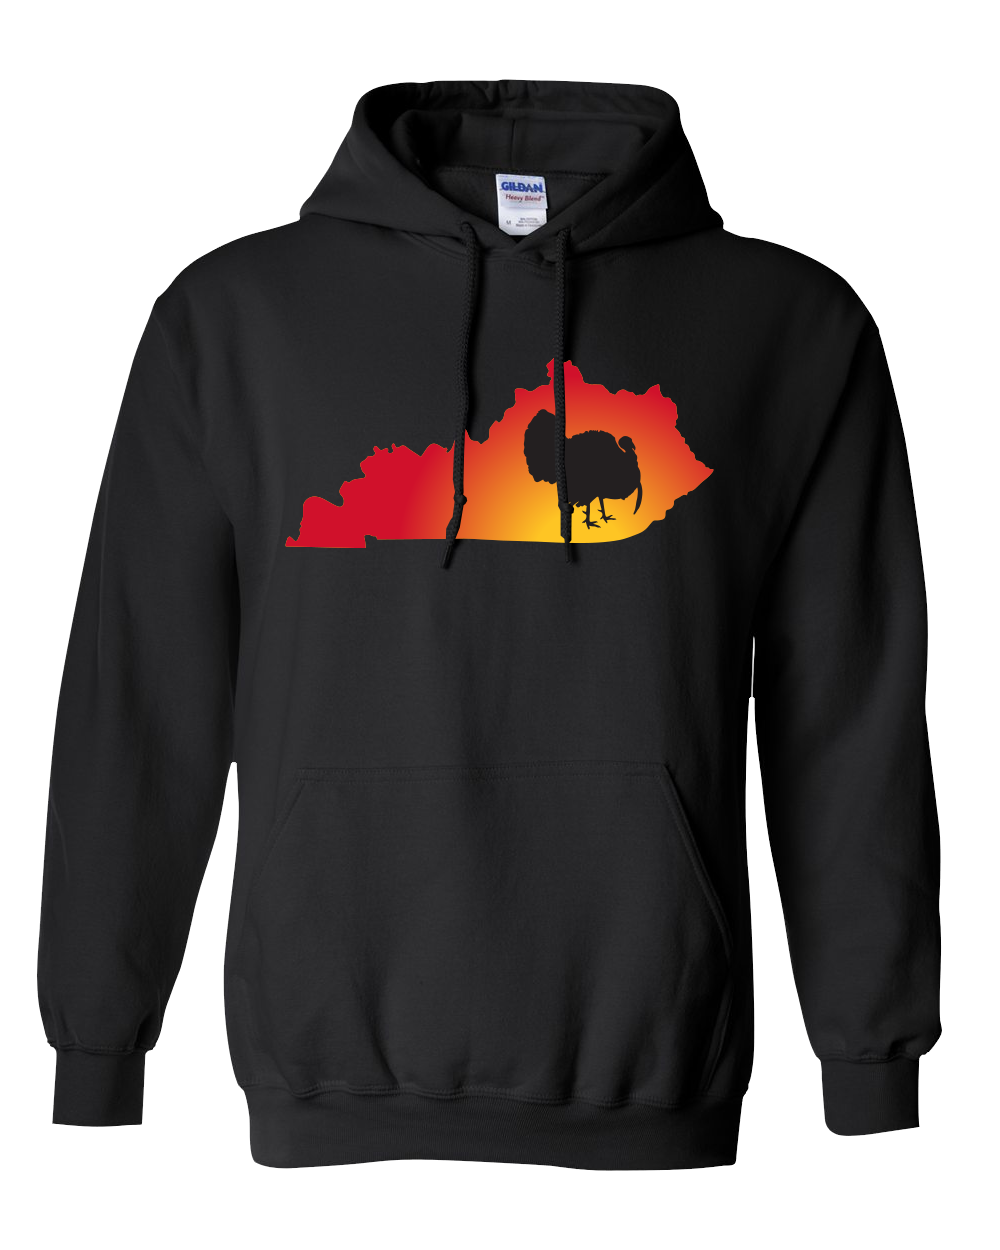 Pullover Hooded Sweatshirt Kentucky Black Turkey Vibrant Design High Quality Tight Knit Ring Spun Low Maintenance Cotton Printed With The Newest Available Color Transfer Technology